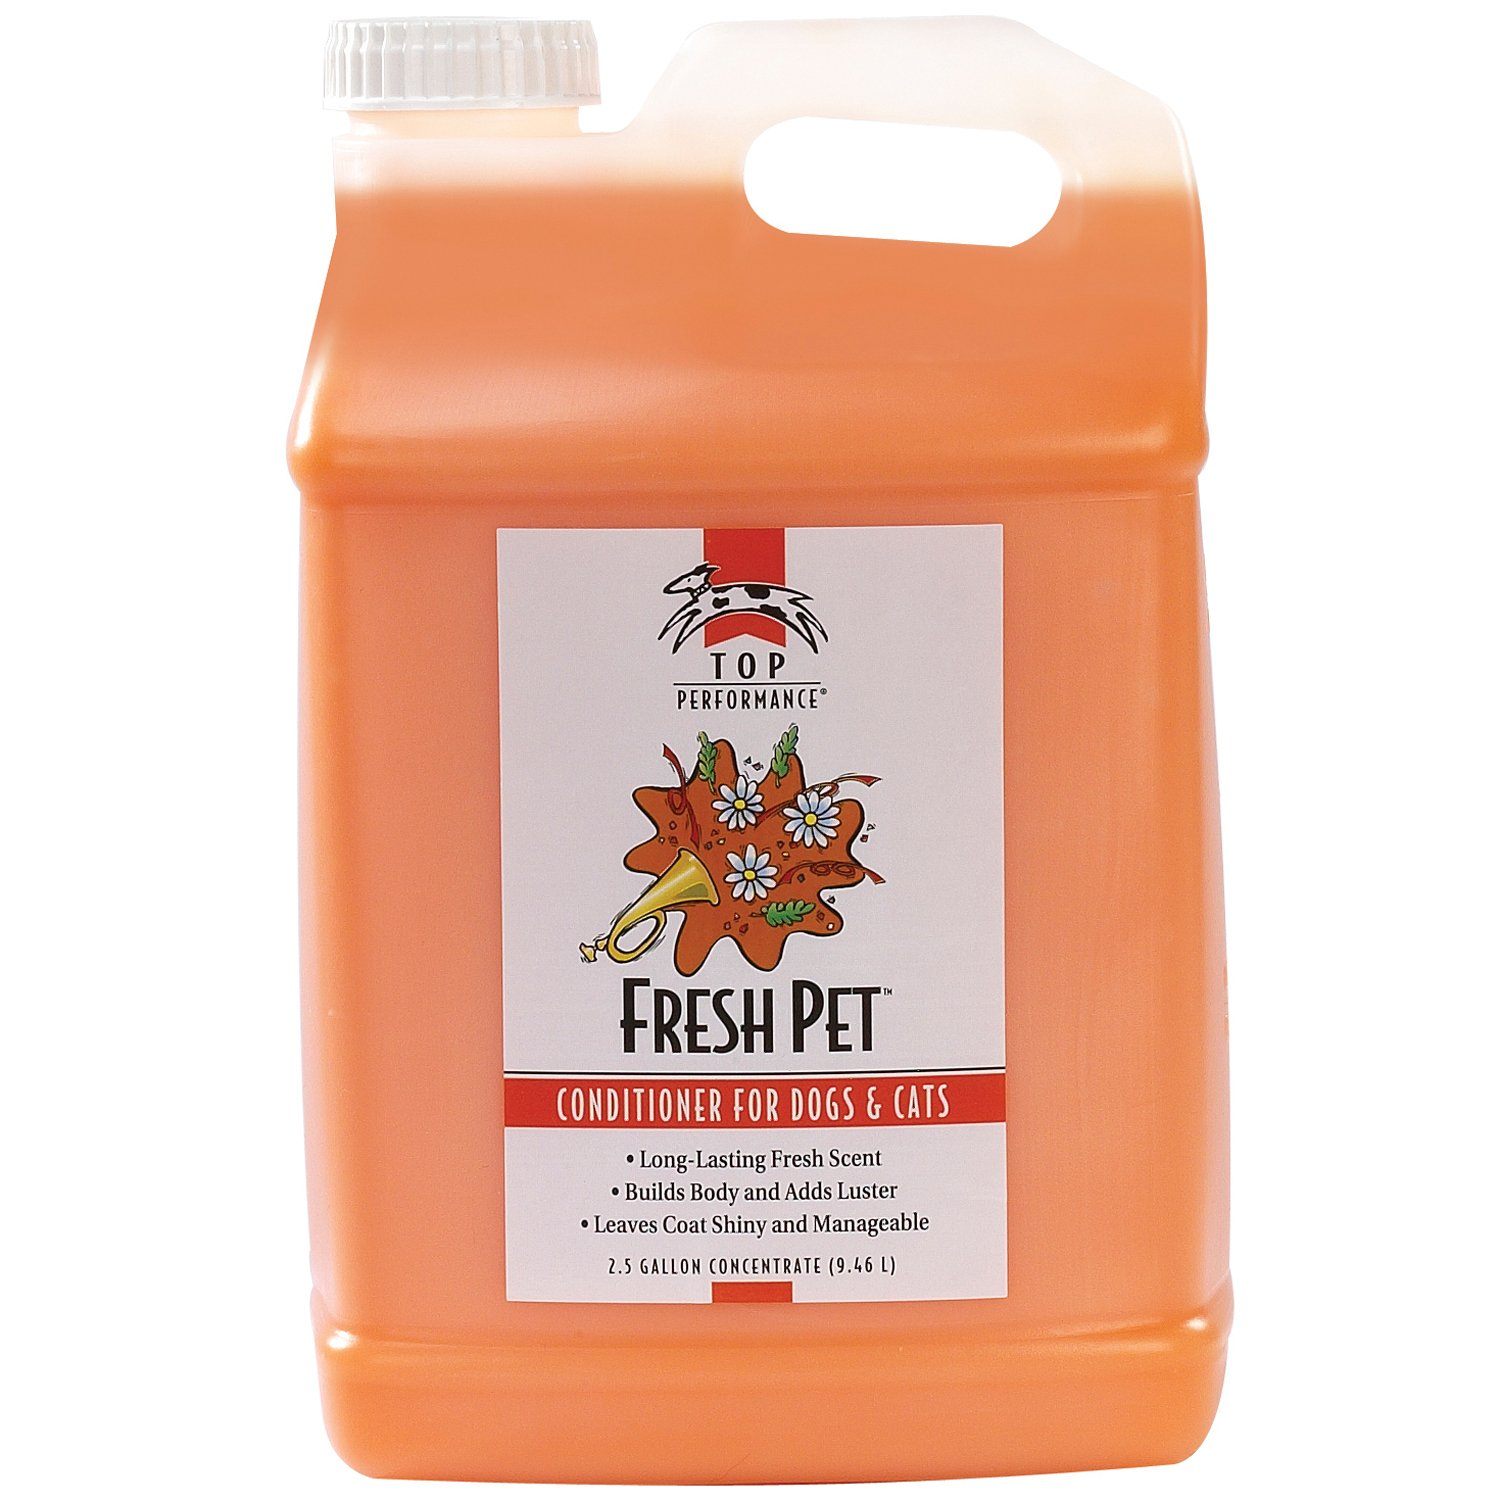 Top Performance Fresh Pet Conditioner, 2-1/2-Gallon by Top Performance